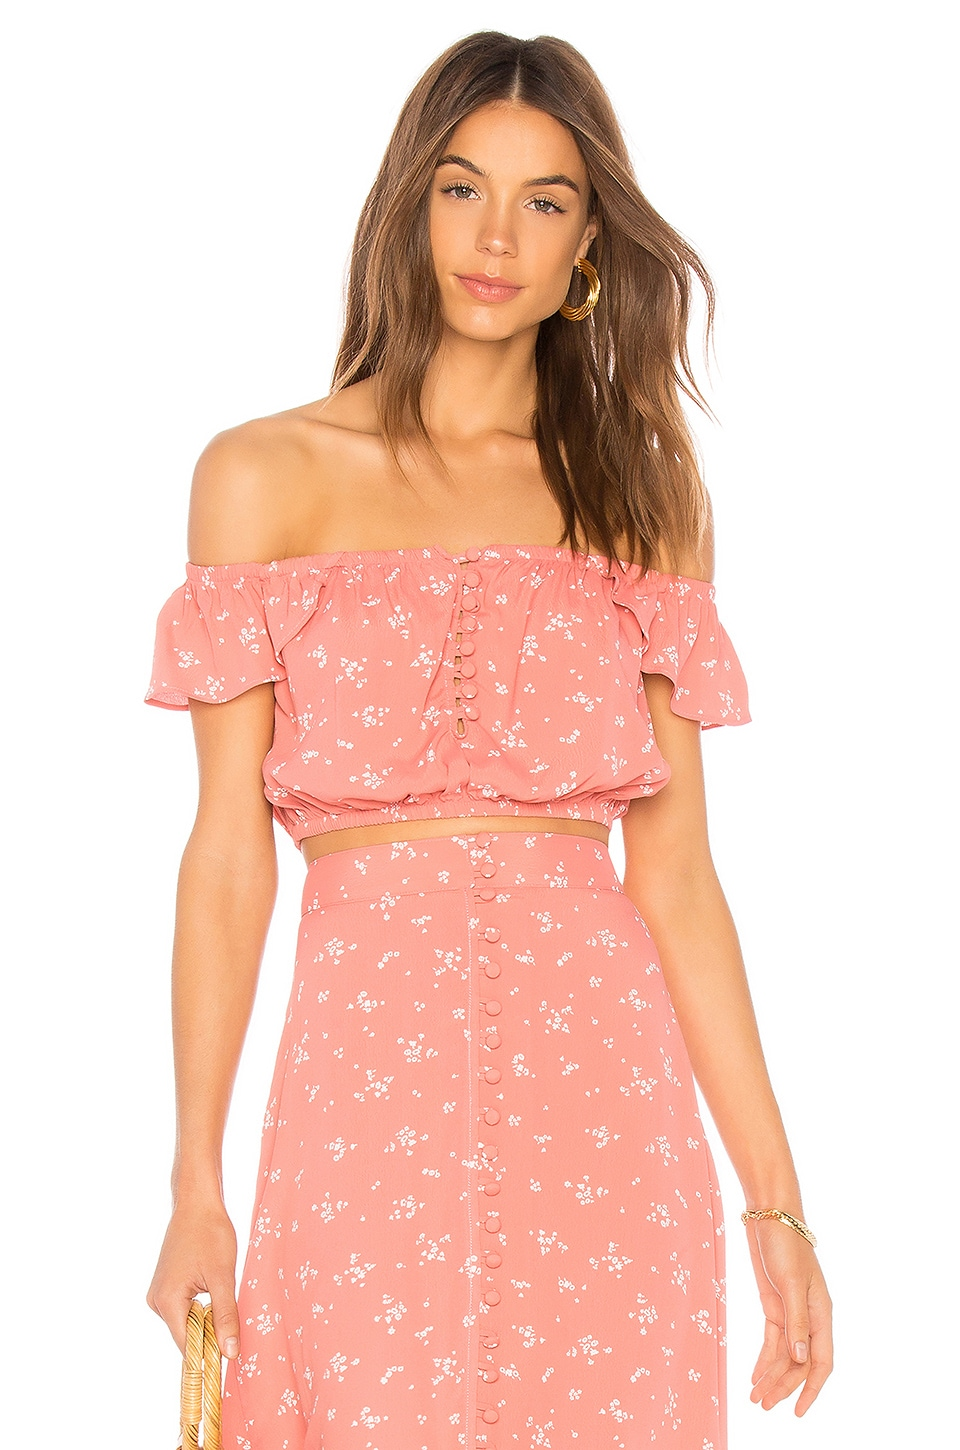 FLYNN SKYE Tori Top in Cotton Candy Delight